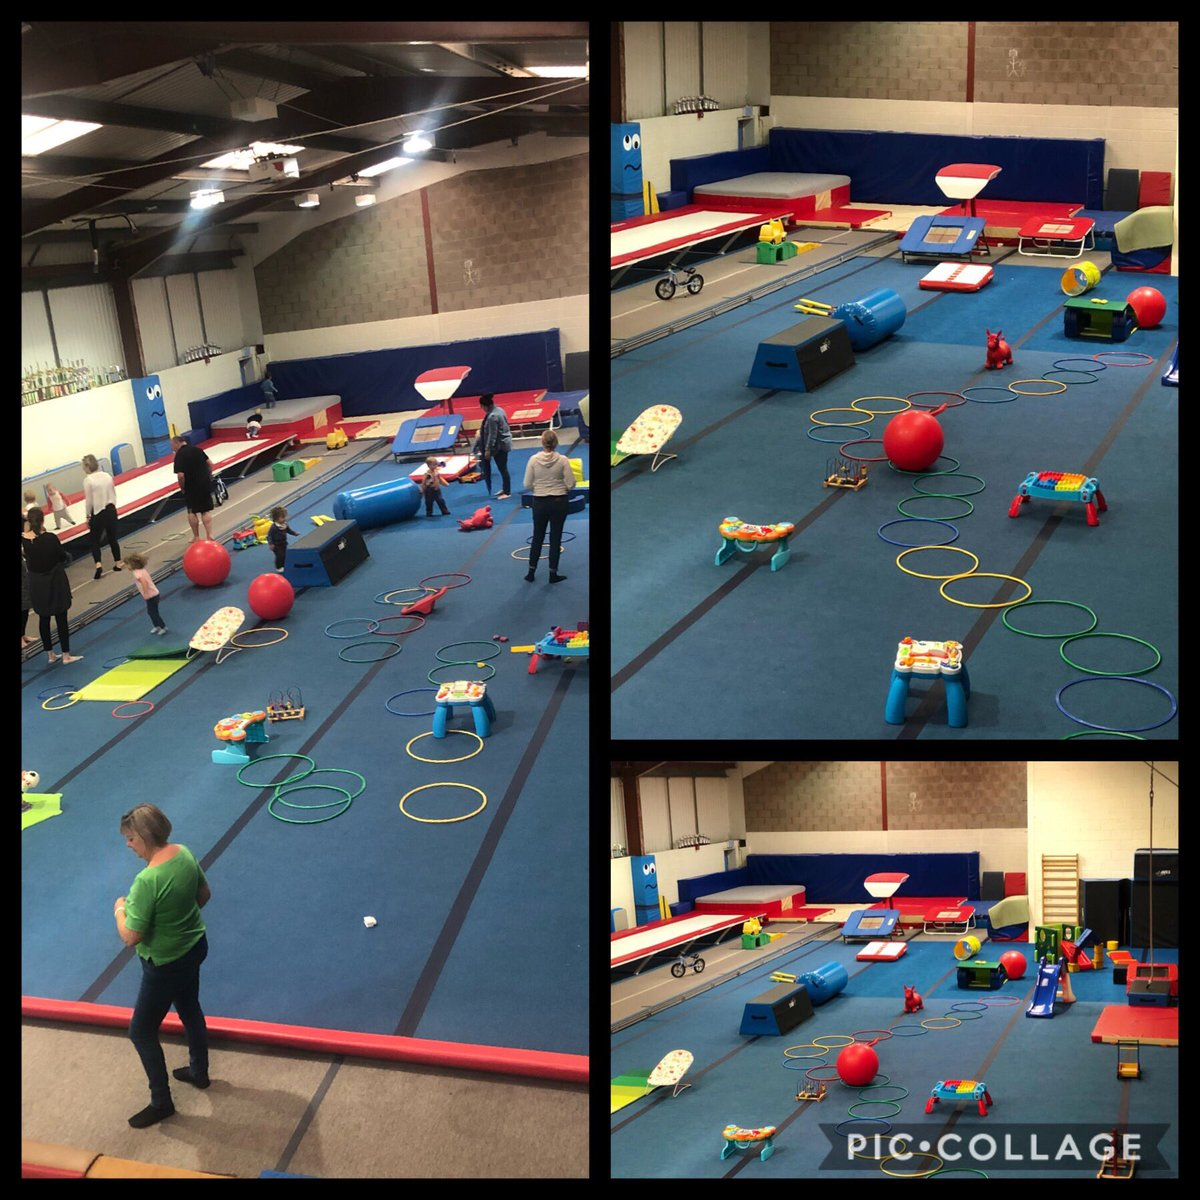 Come & join us for GymPlay!   Tuesdays & Thursdays 11:30am-12:30pm!  Just £2 per child 😄  #WyeAndGalaxy #WGGC #Gymnastics #GymPlay #PreSchool #Fun #TinyHumans